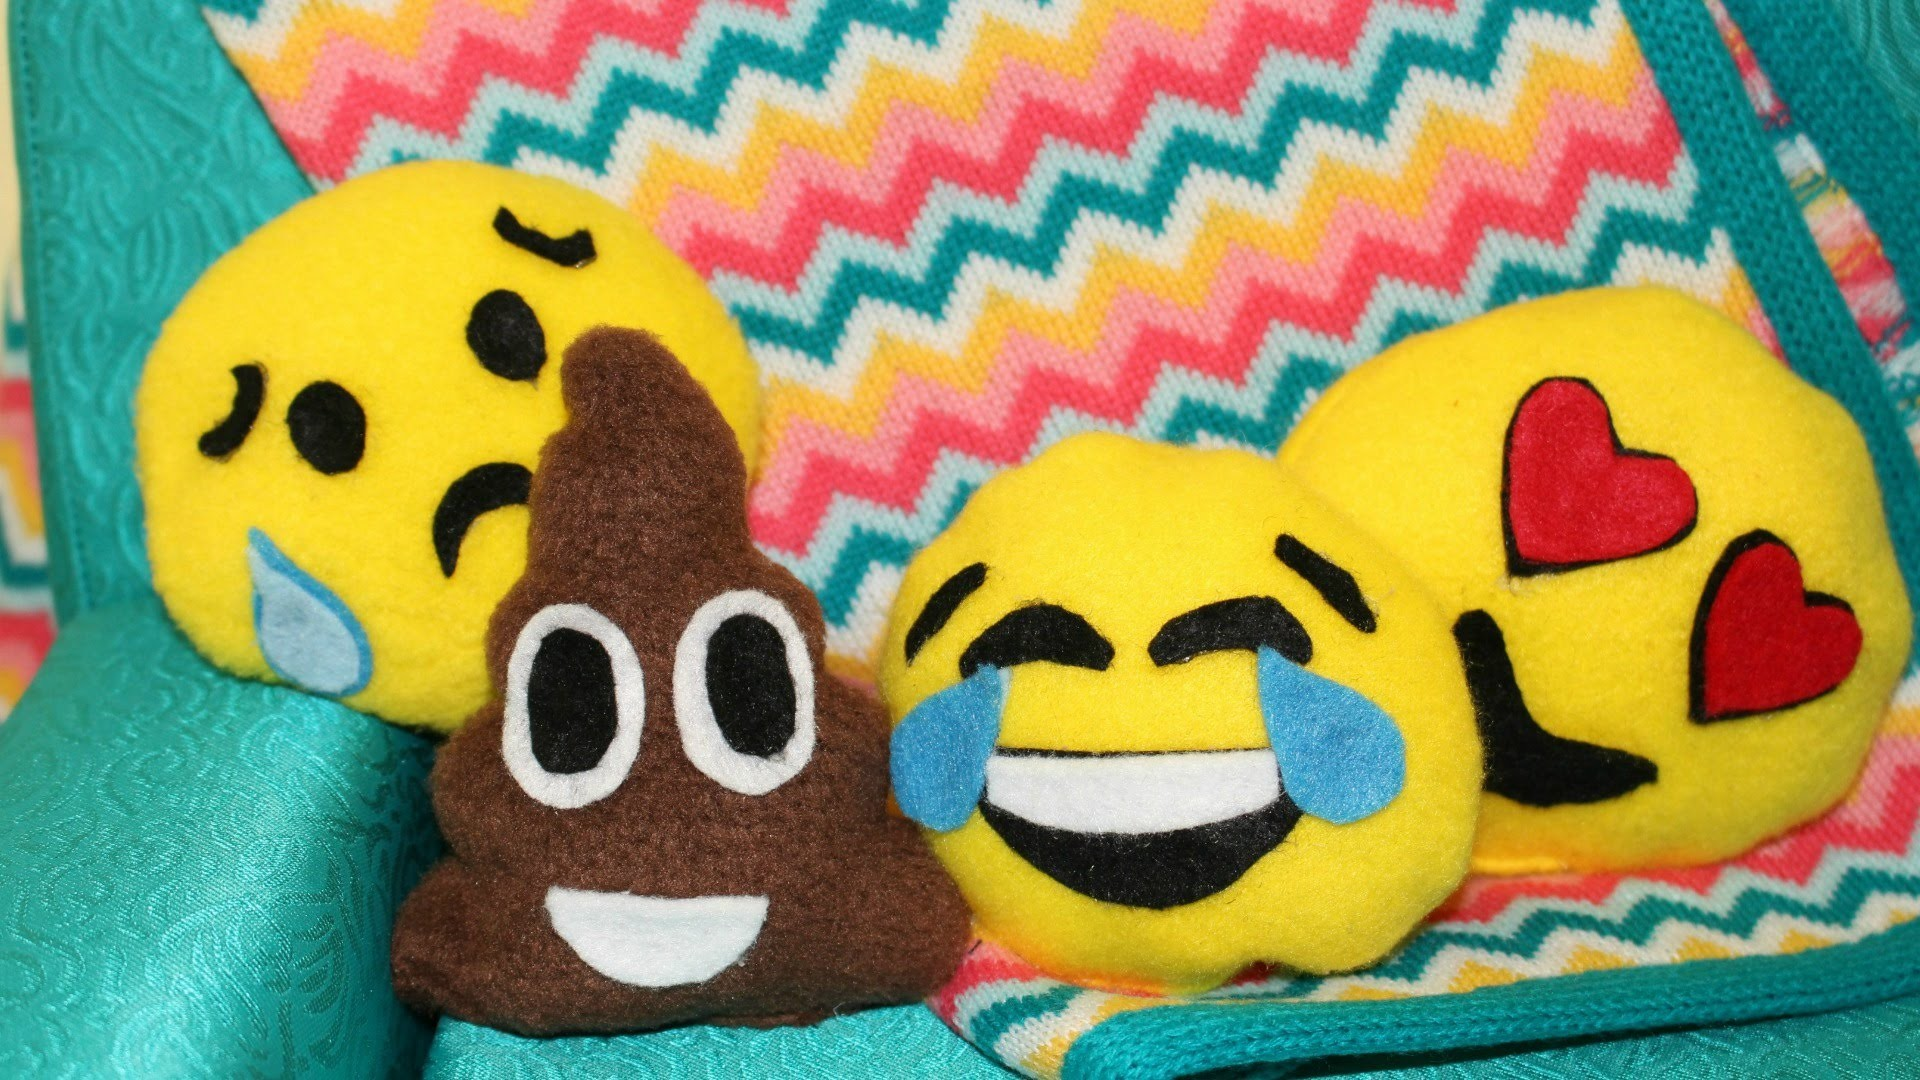 Learn how to make American Girl Doll Emoji Pillows. This easy doll craft  was so much fun to make. We love Emoji pillows and wanted make some Emoji  doll …